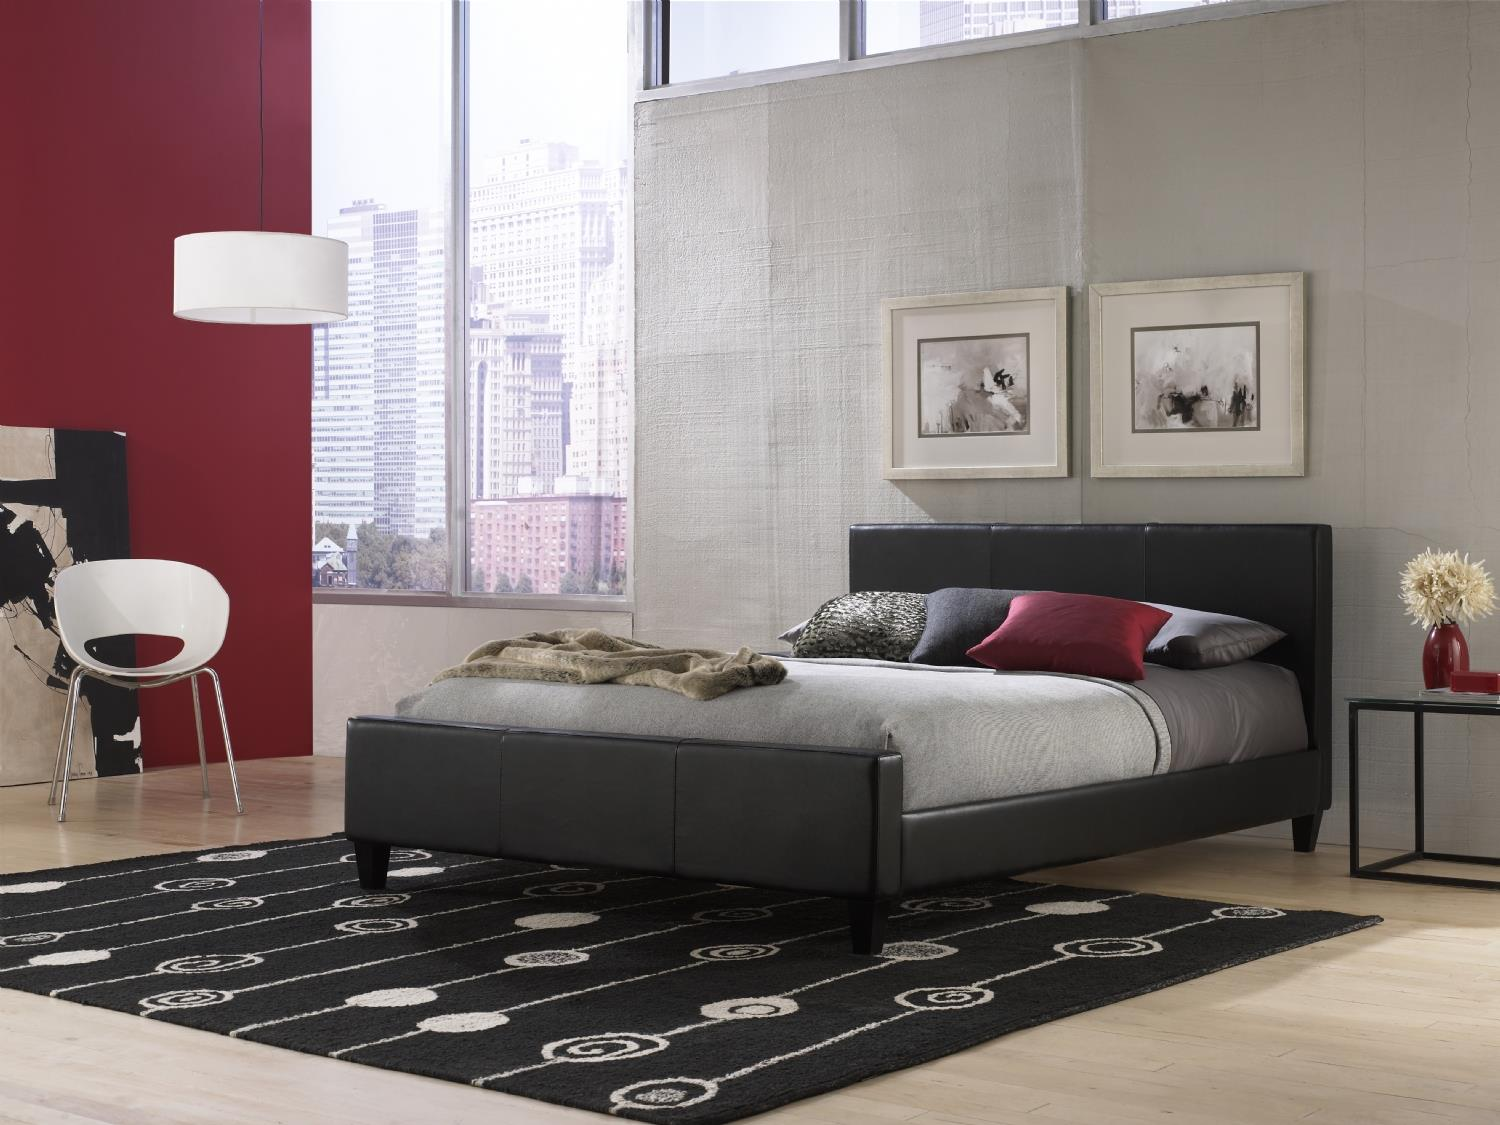 Fashion Bed Group Euro King Bed - Item Number: D91227147